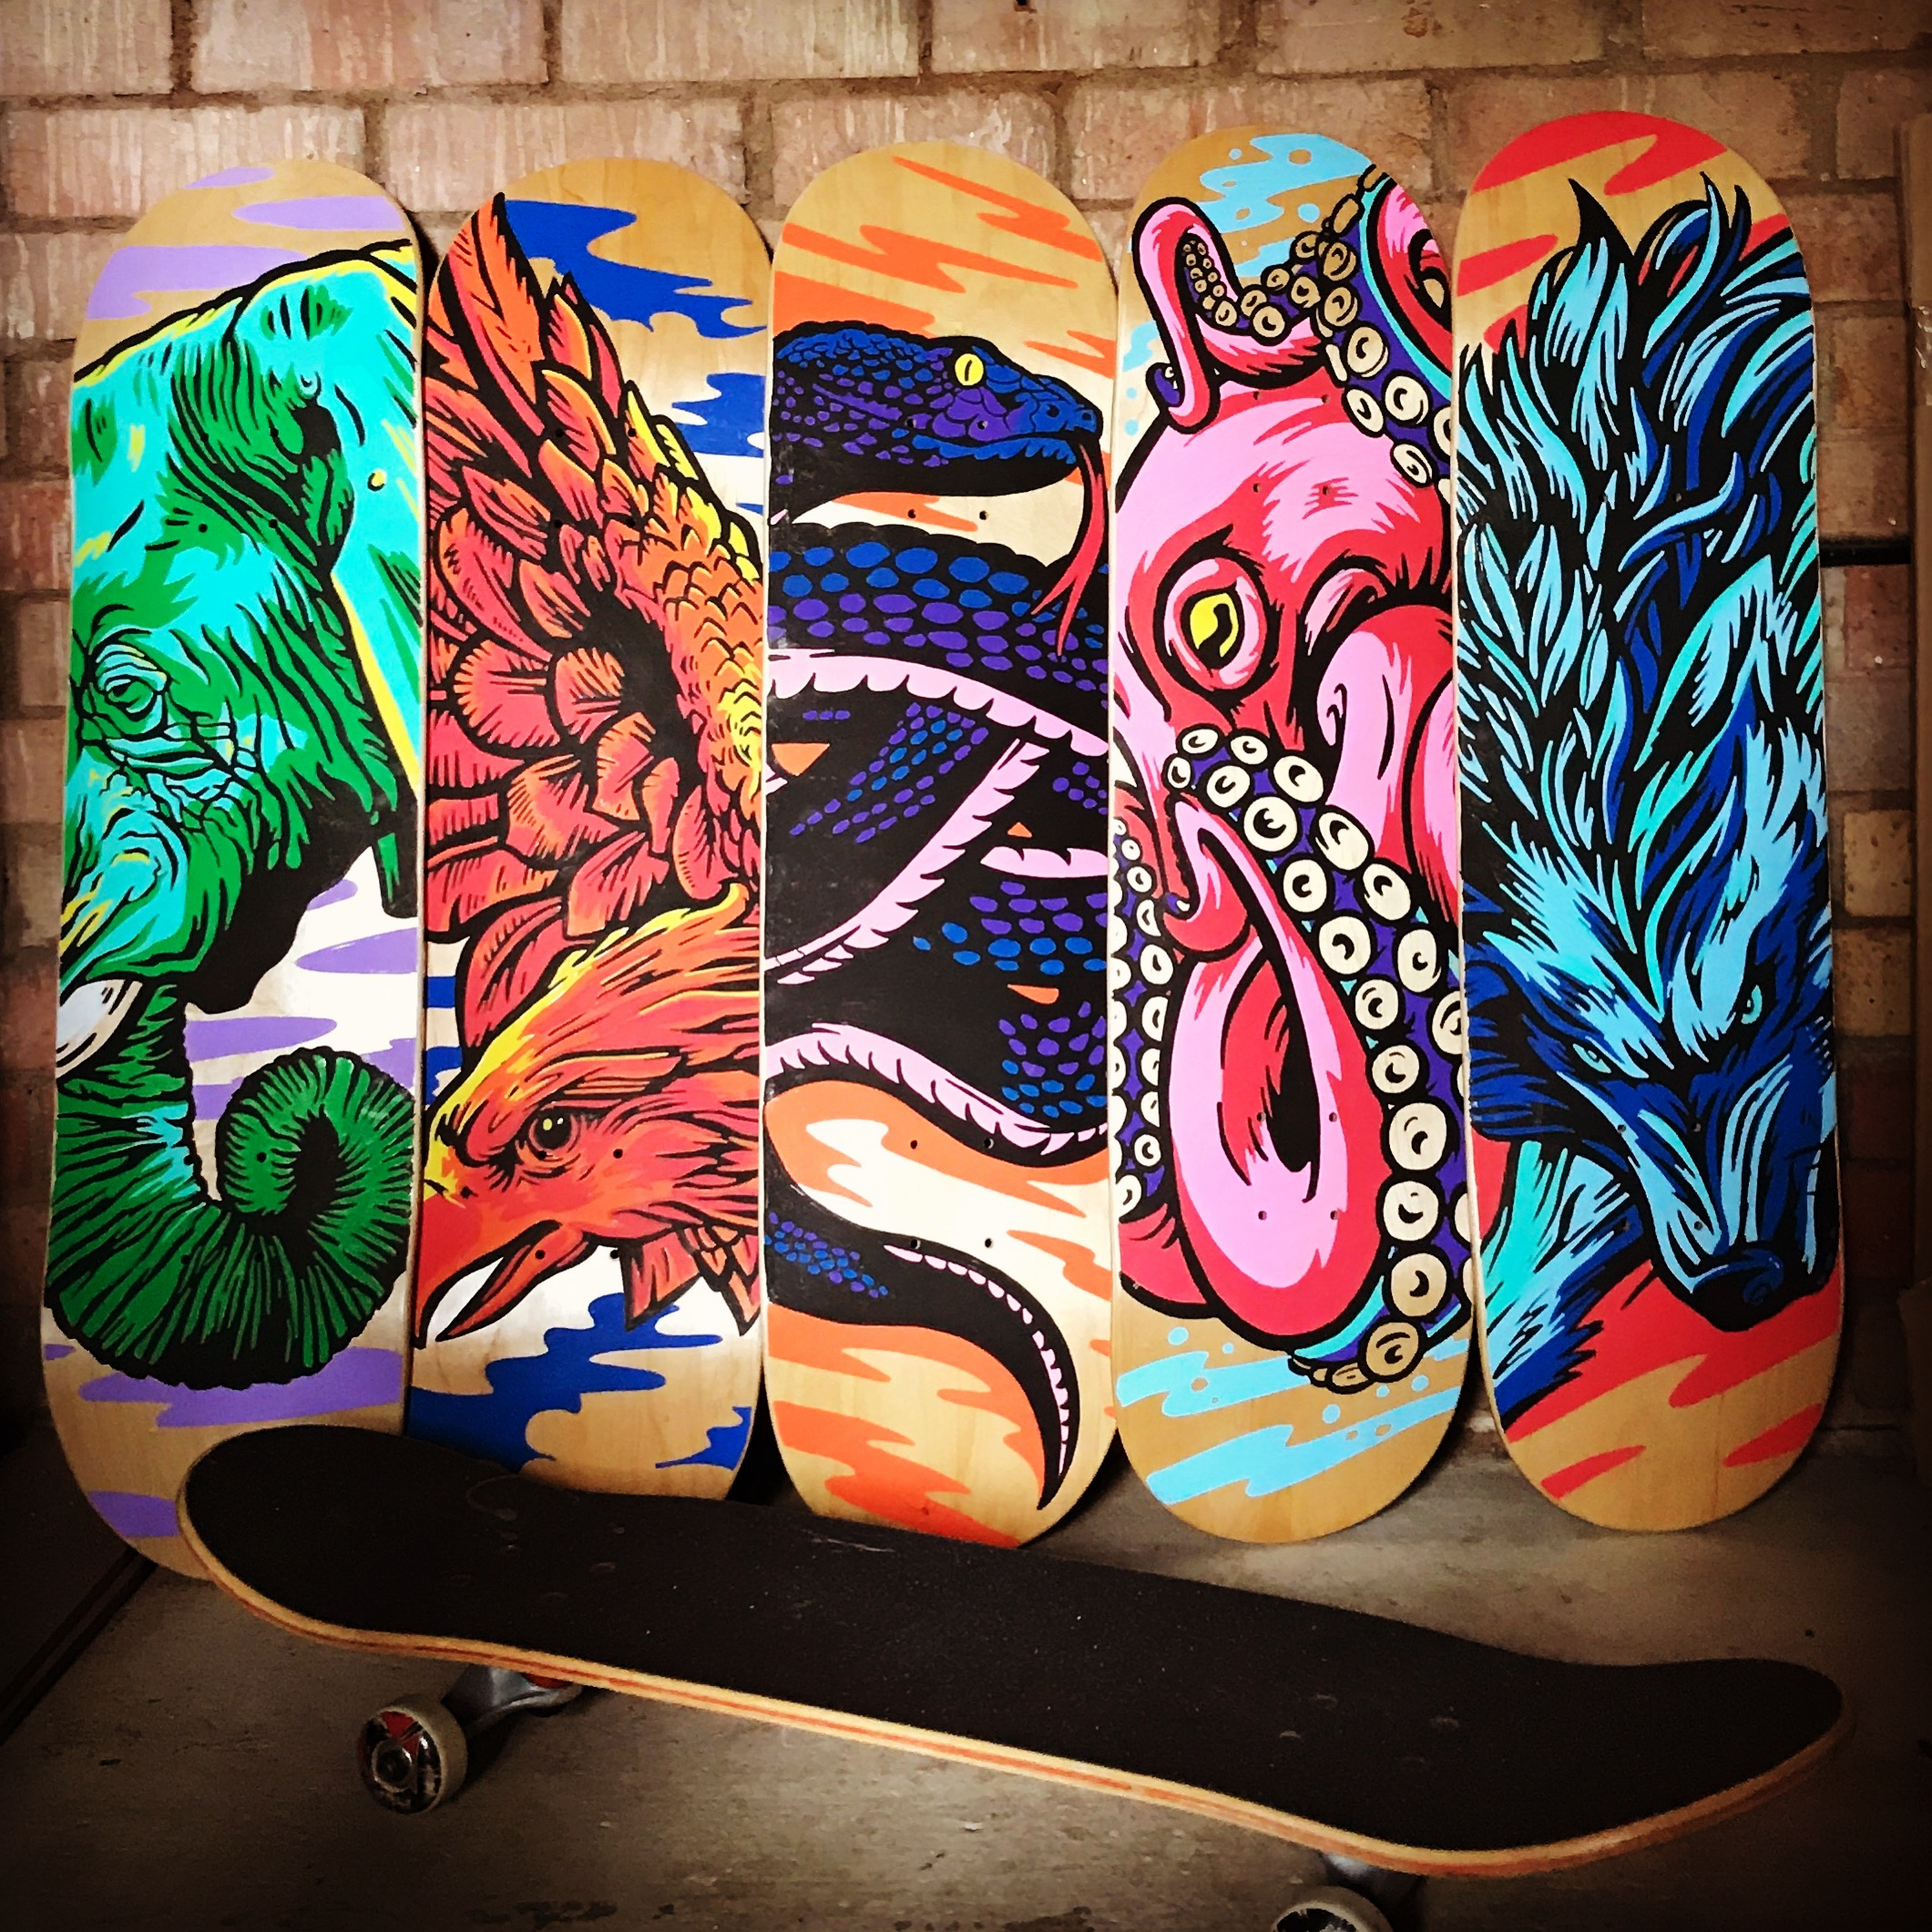 Skateboard art created with Pintor